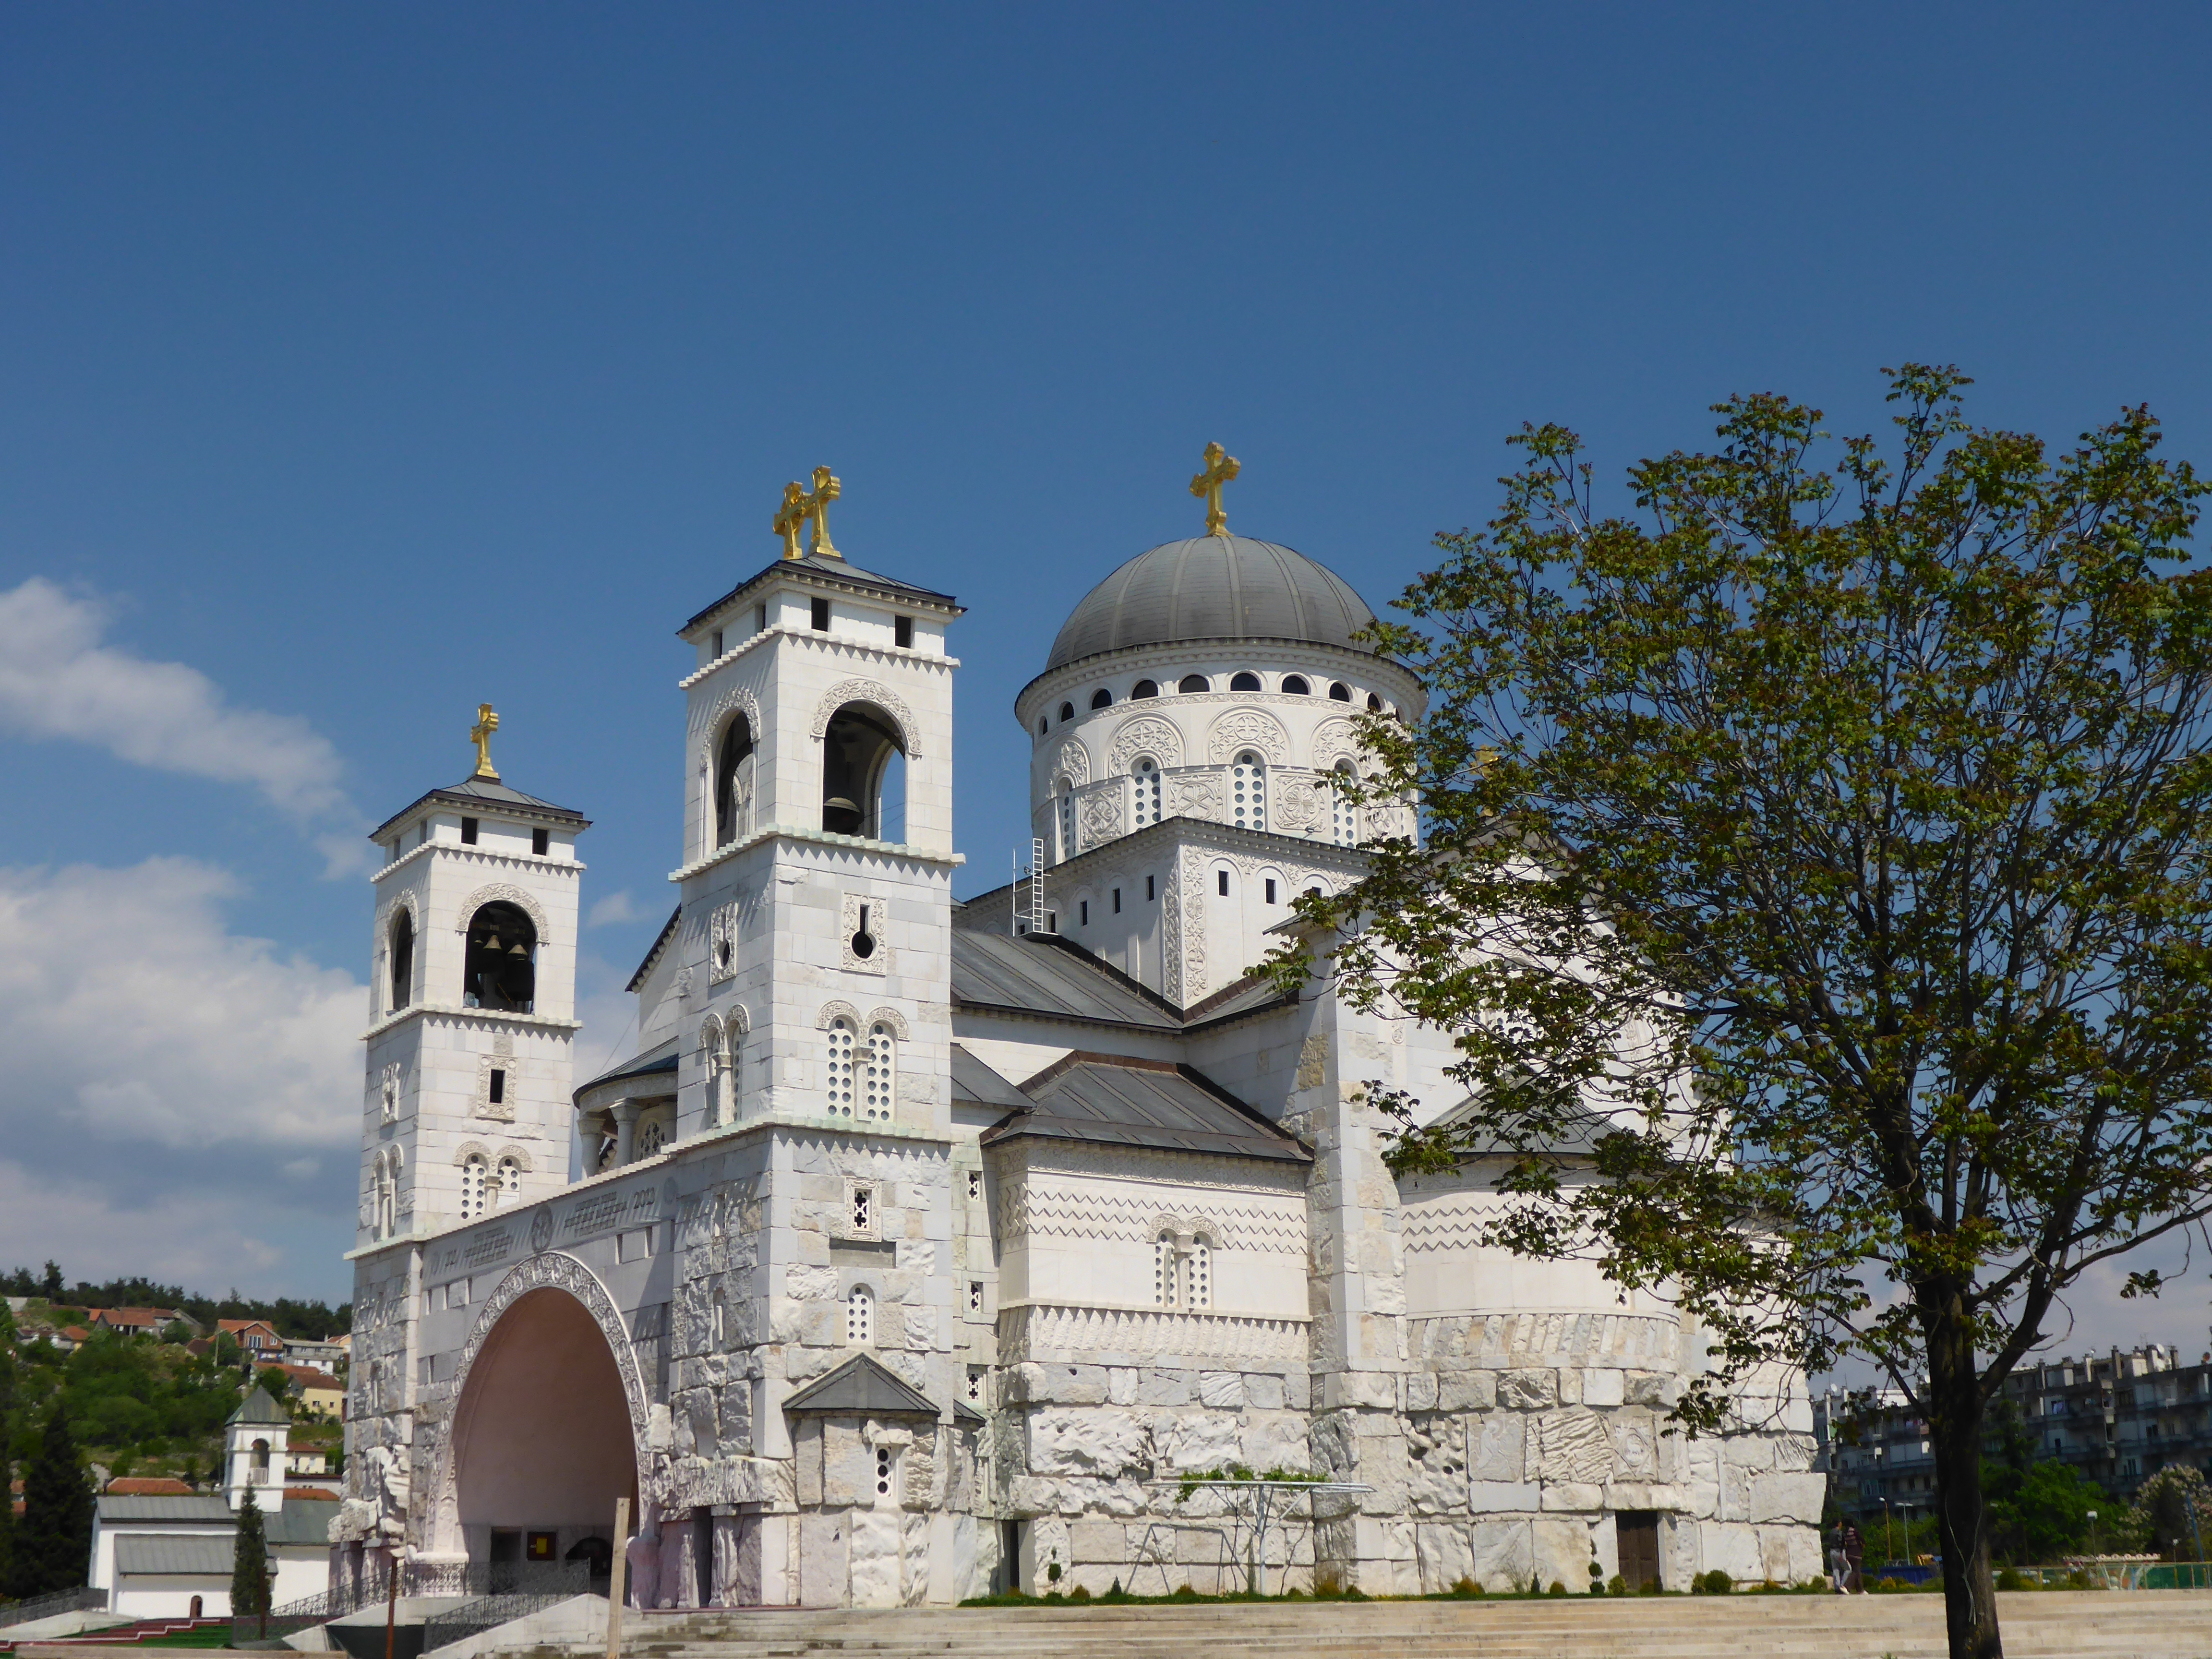 Cathedral of Christ's Resurrection Podgorica, Podgorica – Life is a journey!